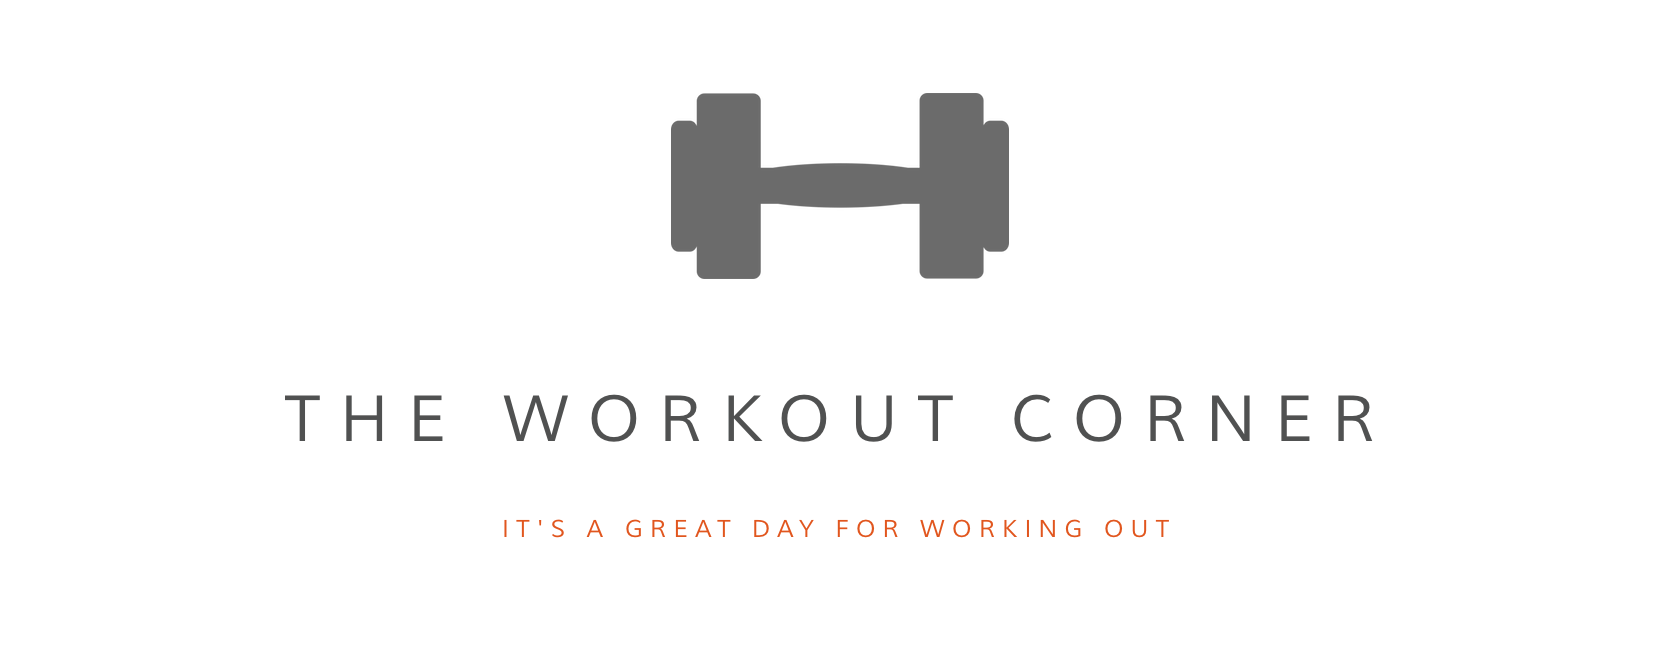 Workout Corner Logo.png